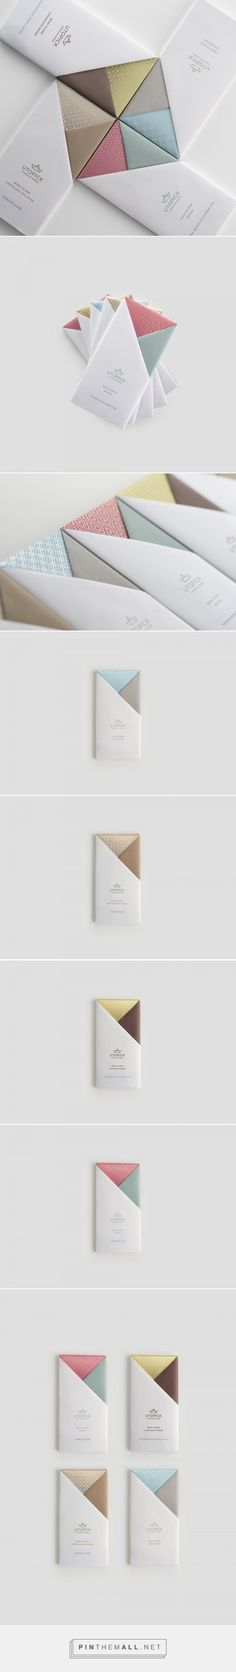 A Lovely Chocolate Bar that's Packaged with Origami resembles to the sails of a ship, easy to unfold. / Designed by Lavernia & Cienfuegos